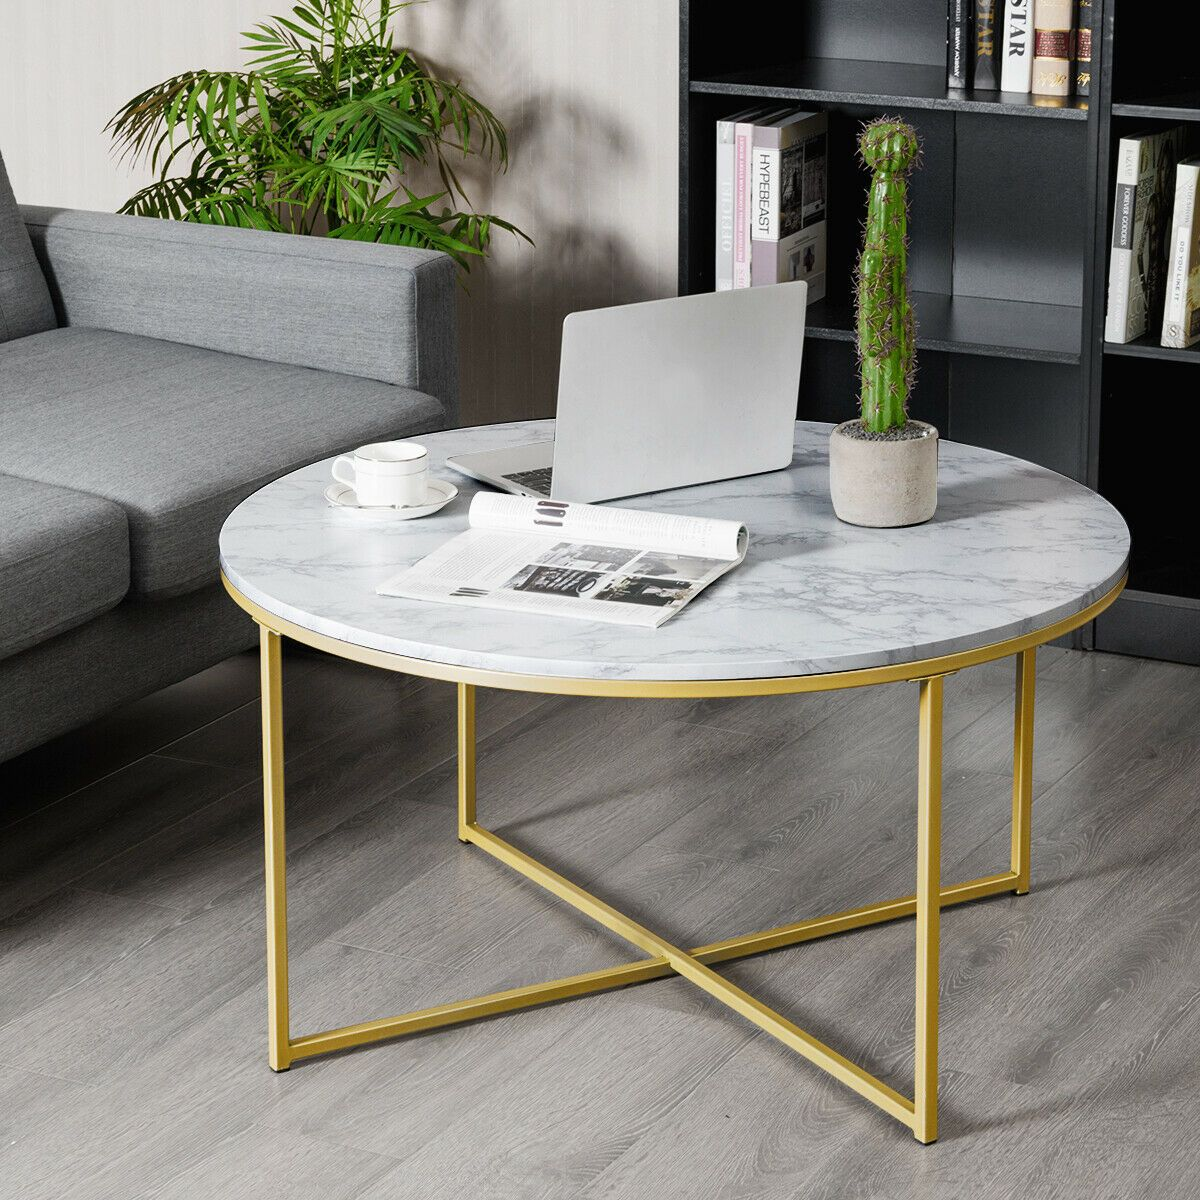 Modern Faux Marble Top Round Accent Side Coffee Table Coffee Table Side Coffee Table Gold Living Room Furniture [ 1200 x 1200 Pixel ]